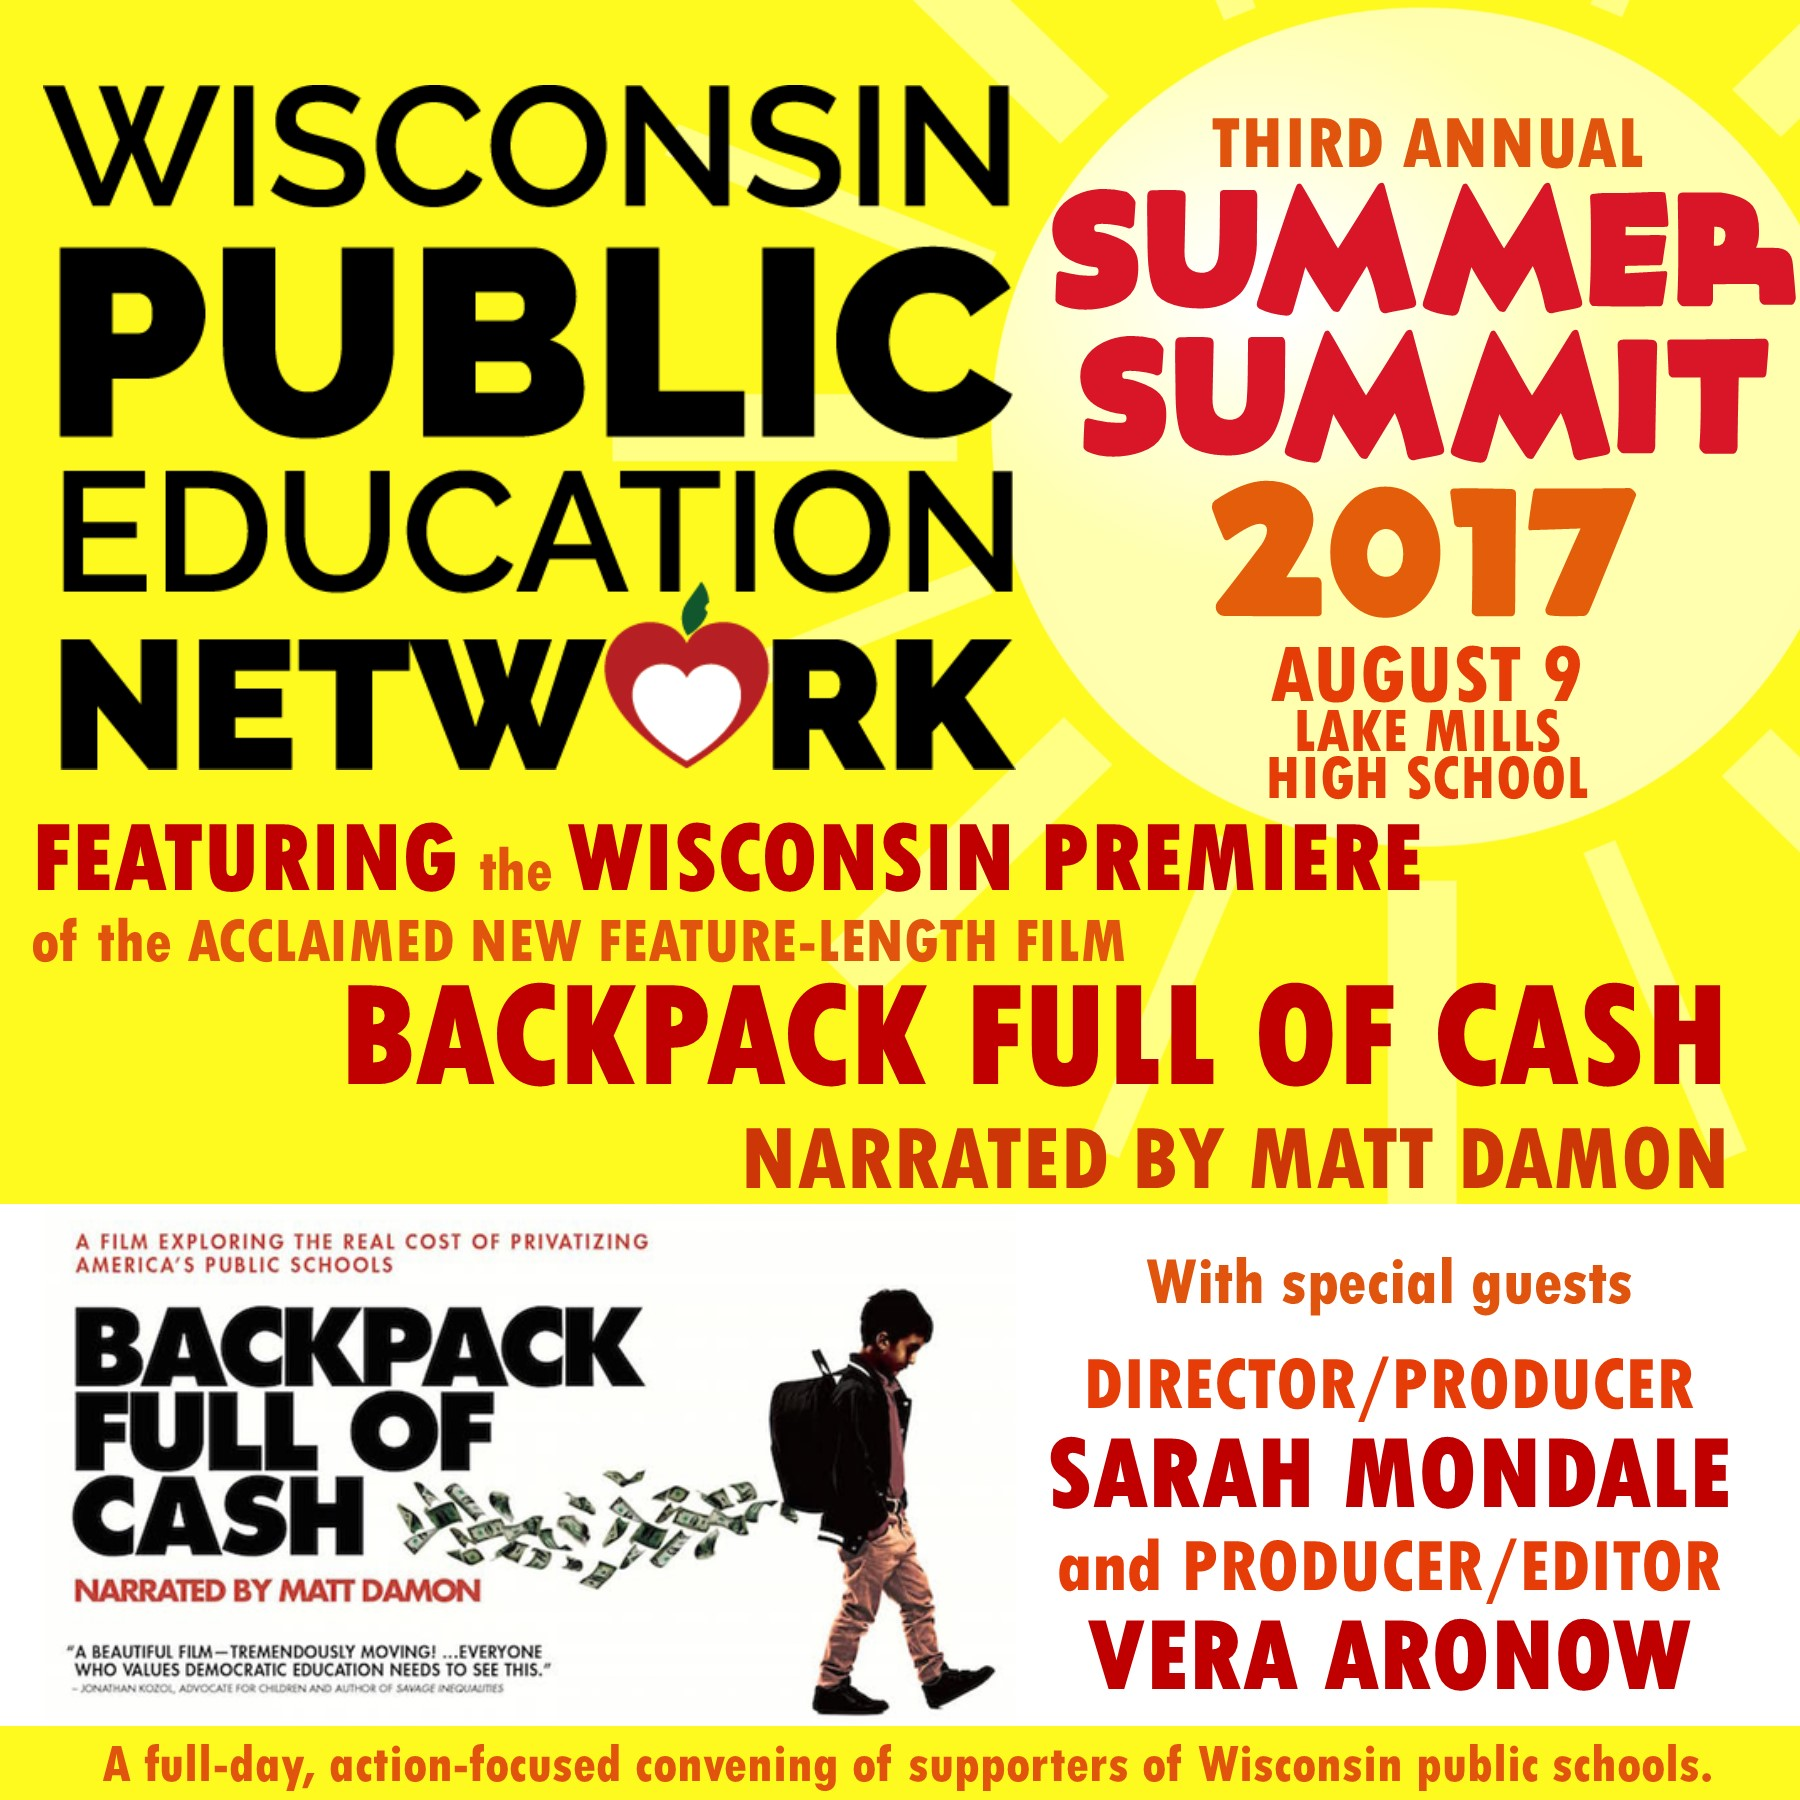 Summer Summit 2017 graphic + Backpack promo